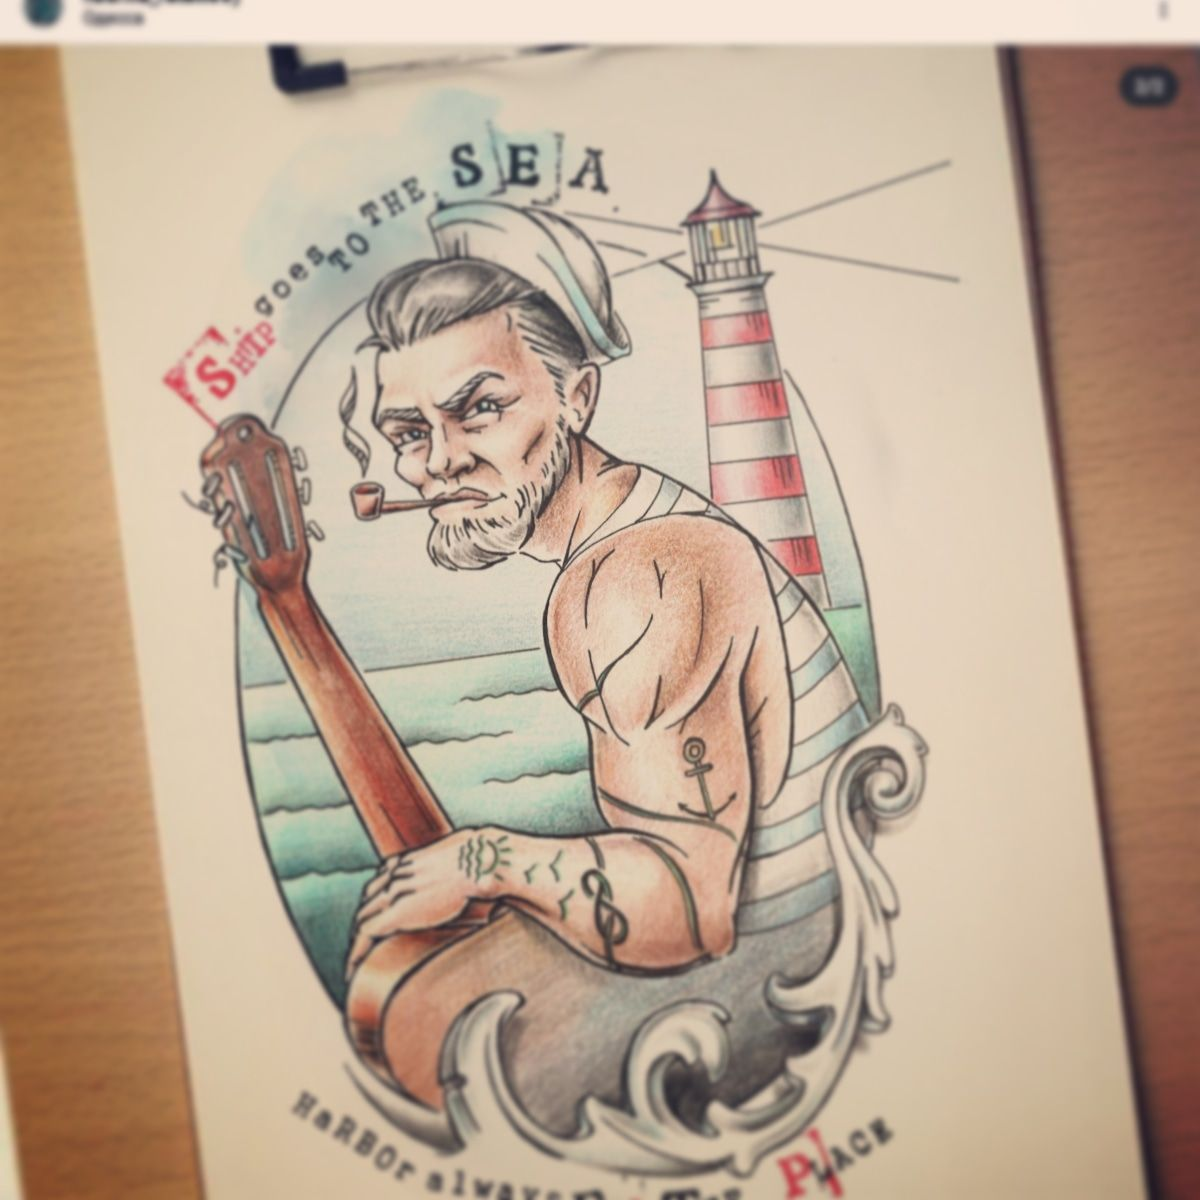 sailor | tattoo | old school | sketch | tattoo design | ideas tattoos | lighthouse | seaman | sea | odessa